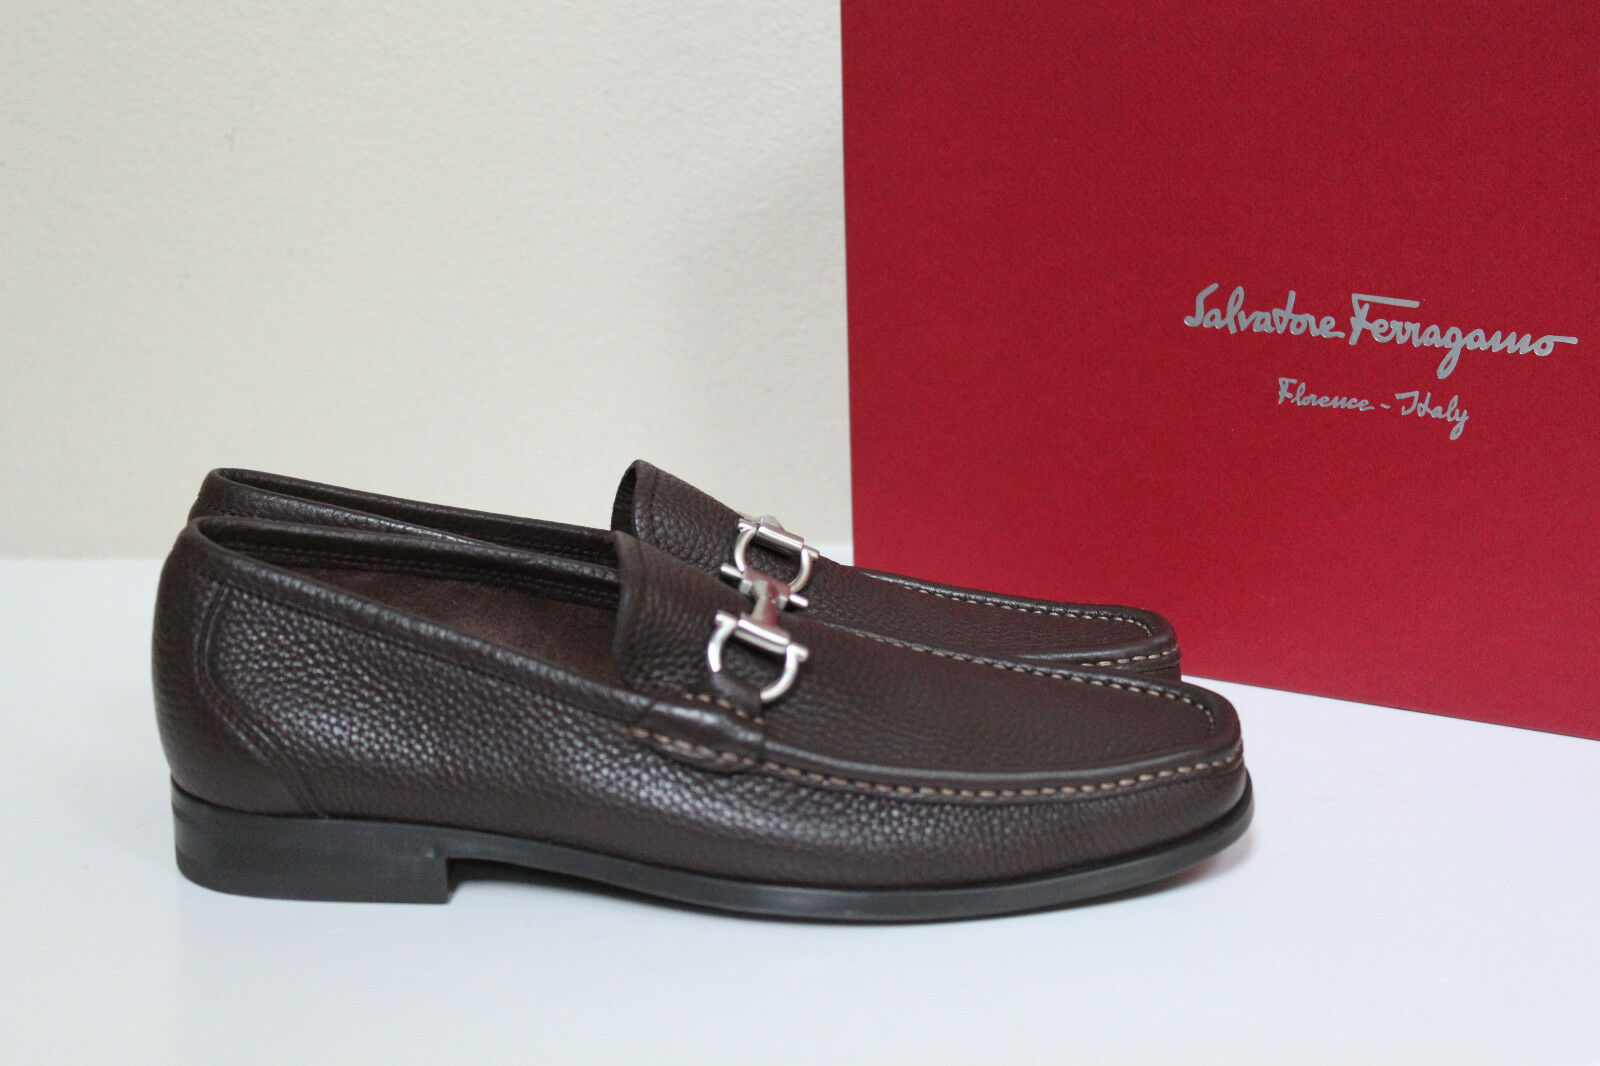 New sz 6 6 6 EE Wide SALVATORE FERRAGAMO Magnifico Brown Loafers Leather Men shoes 9c5008